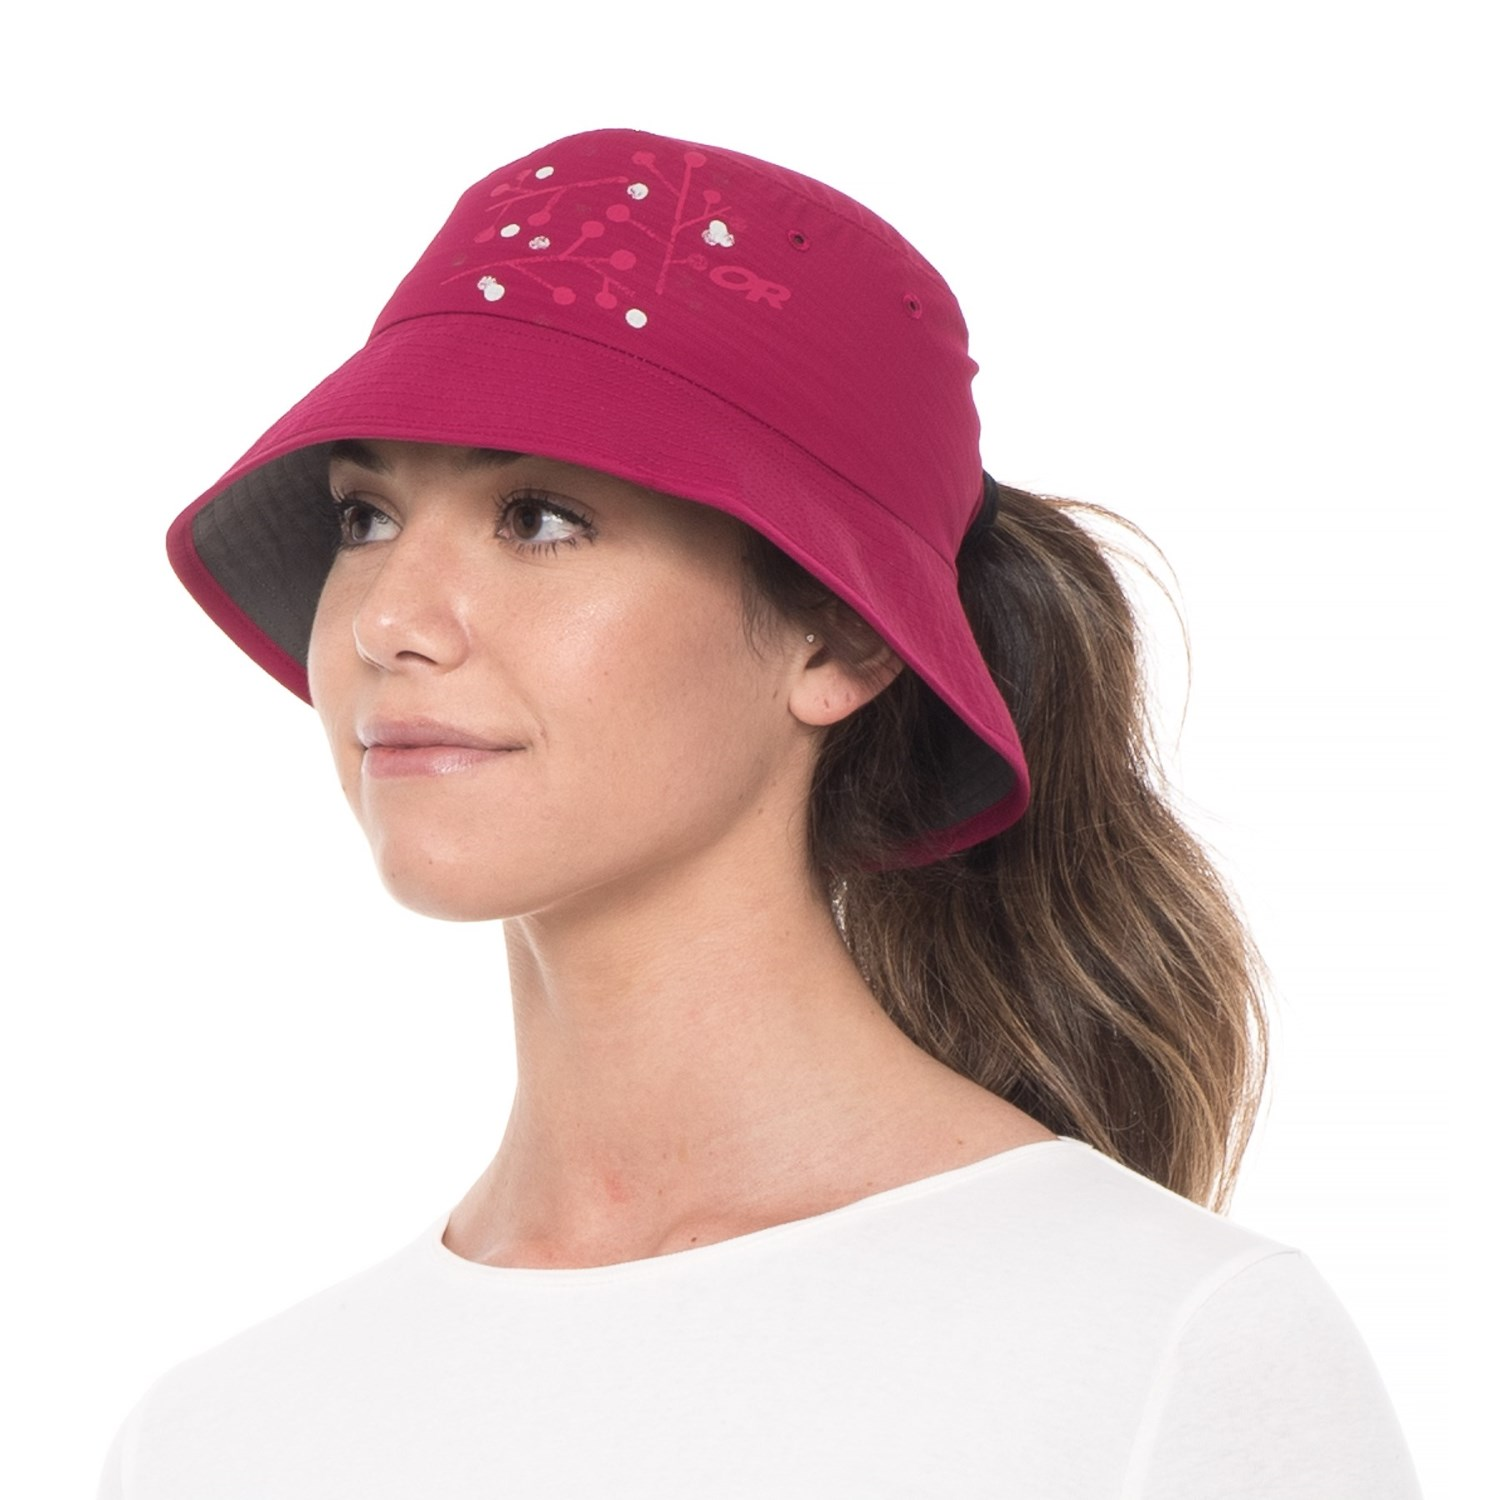 4b689be6 Outdoor Research Solaris Bucket Hat - UPF 50+, Crushable (For Women)